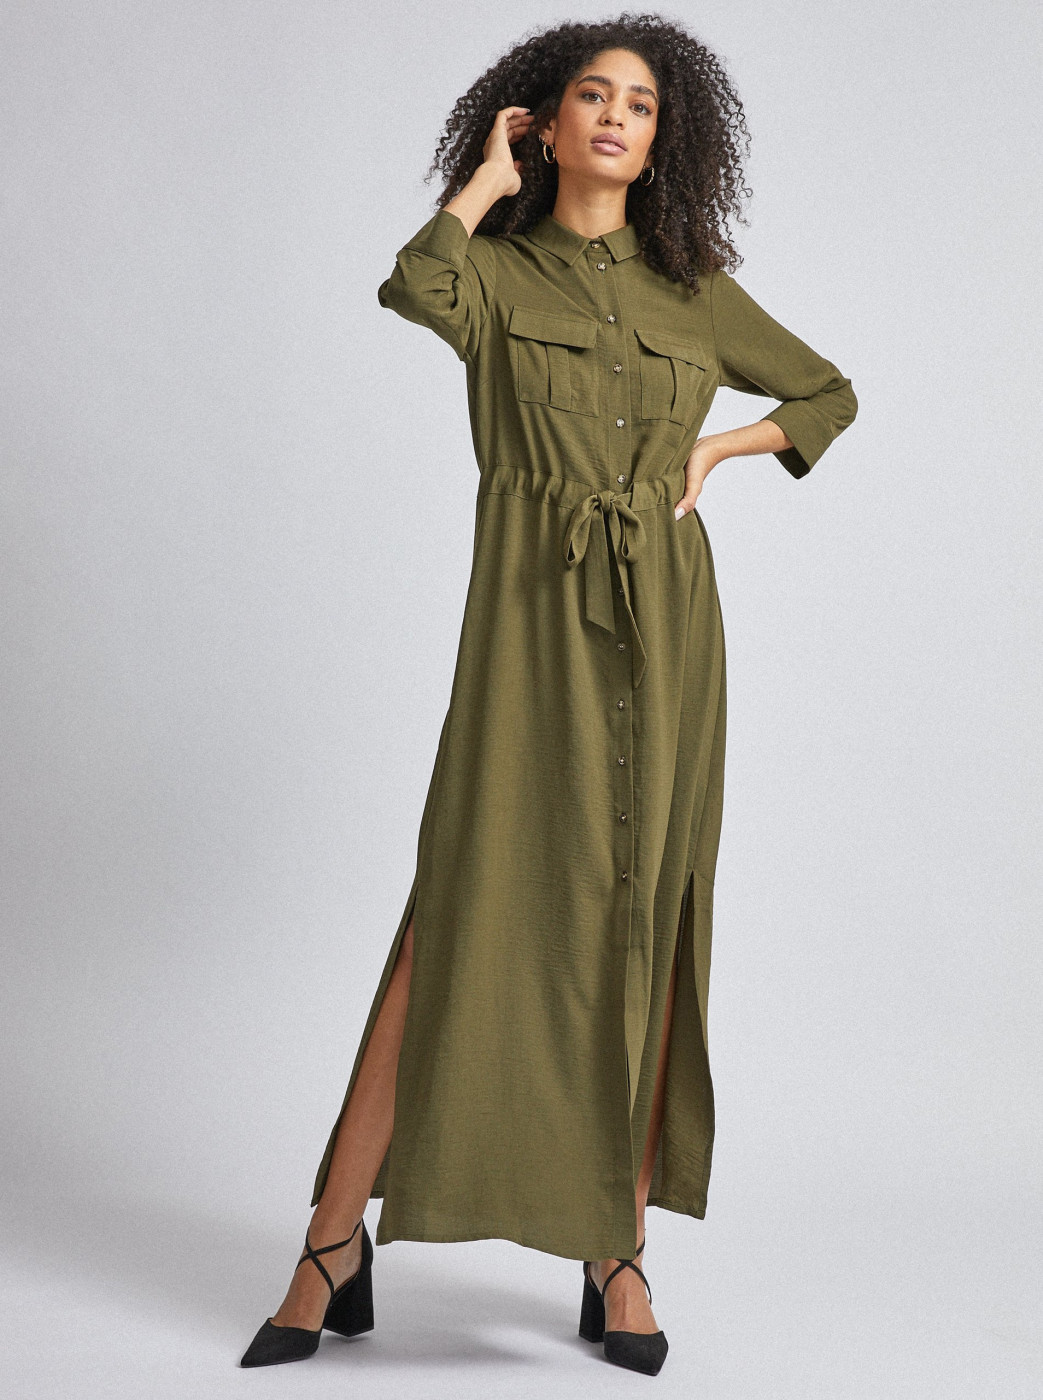 Dorothy Perkins Green Shirt Maxi dress